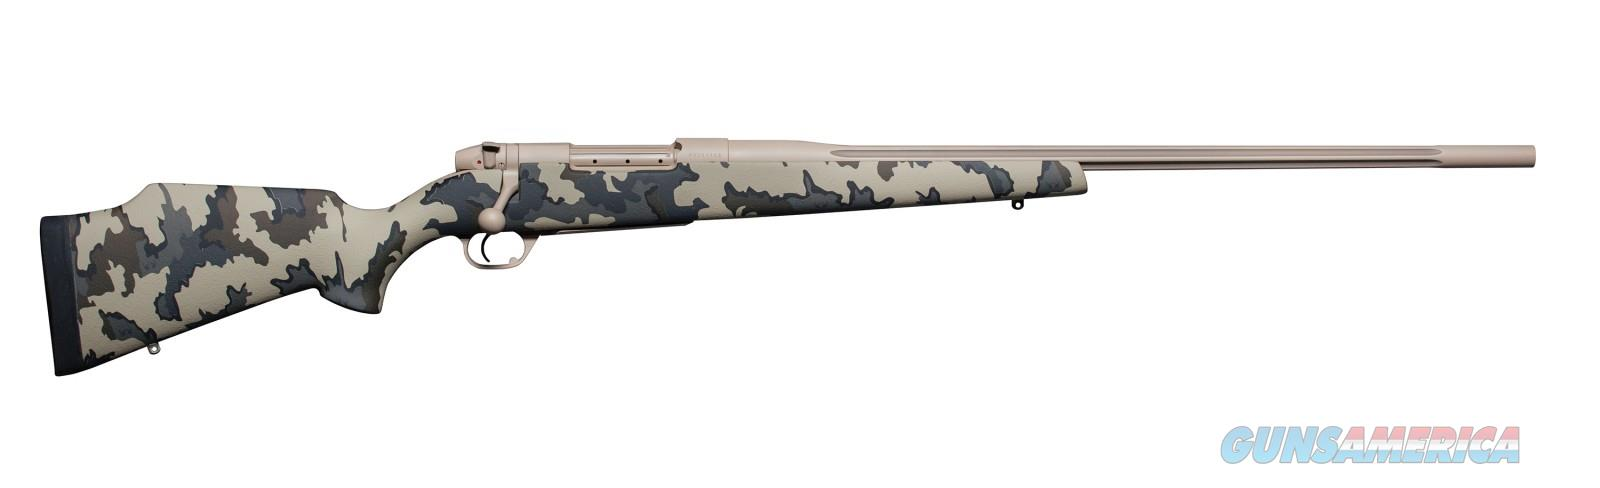 "Weatherby Mark V Arroyo RC 6.5-300 Wby Mag 26"" MAYM653WR6O  Guns > Rifles > Weatherby Rifles > Sporting"